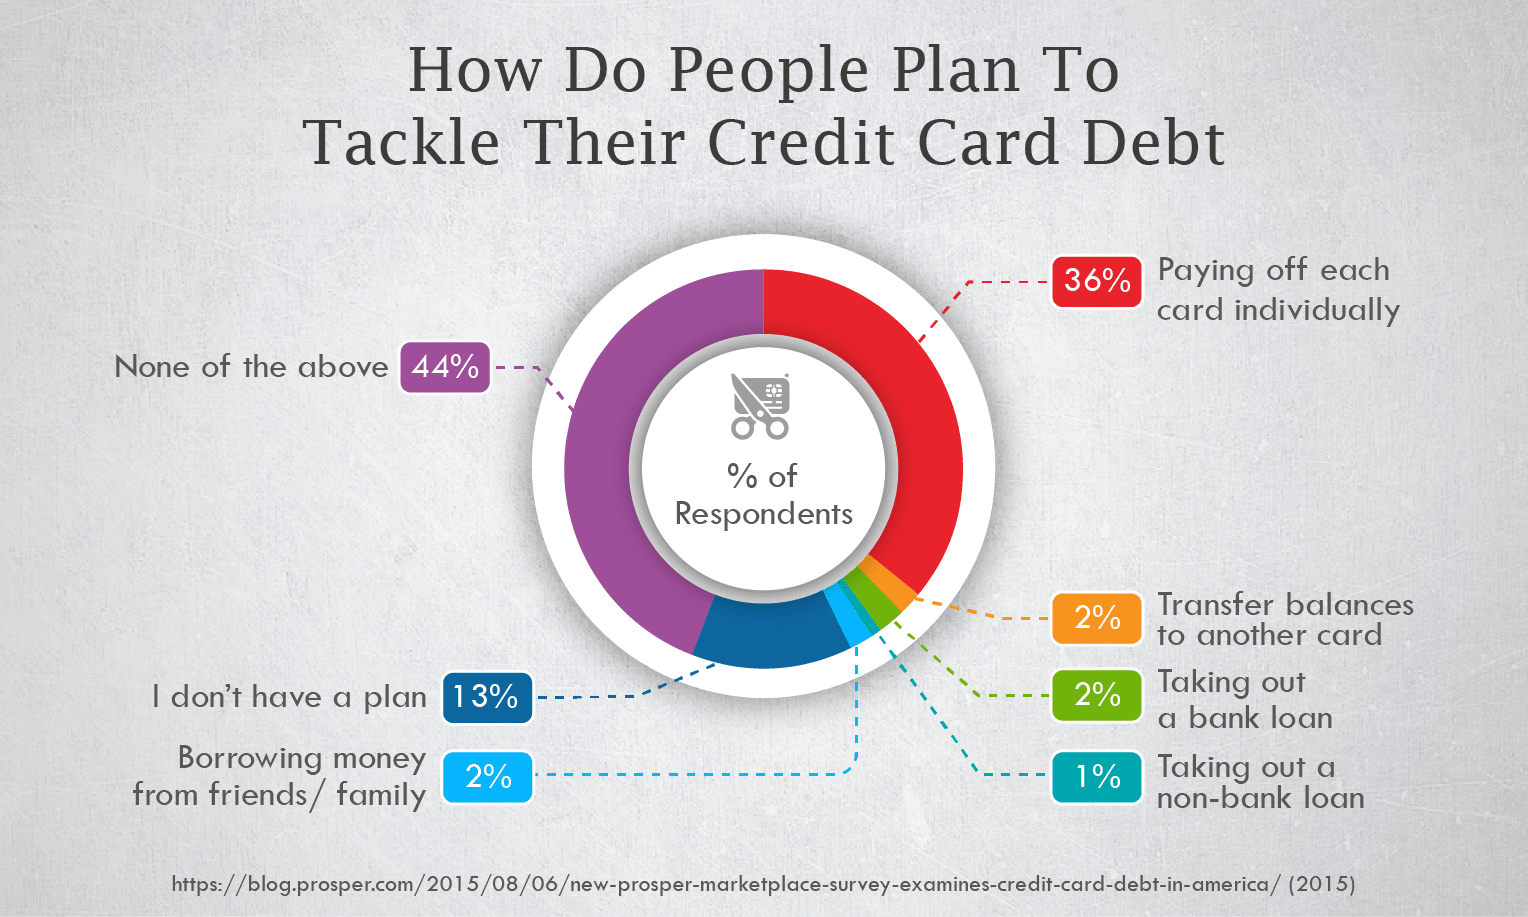 How Do People Plan To Tackle Their Credit Card Debt?